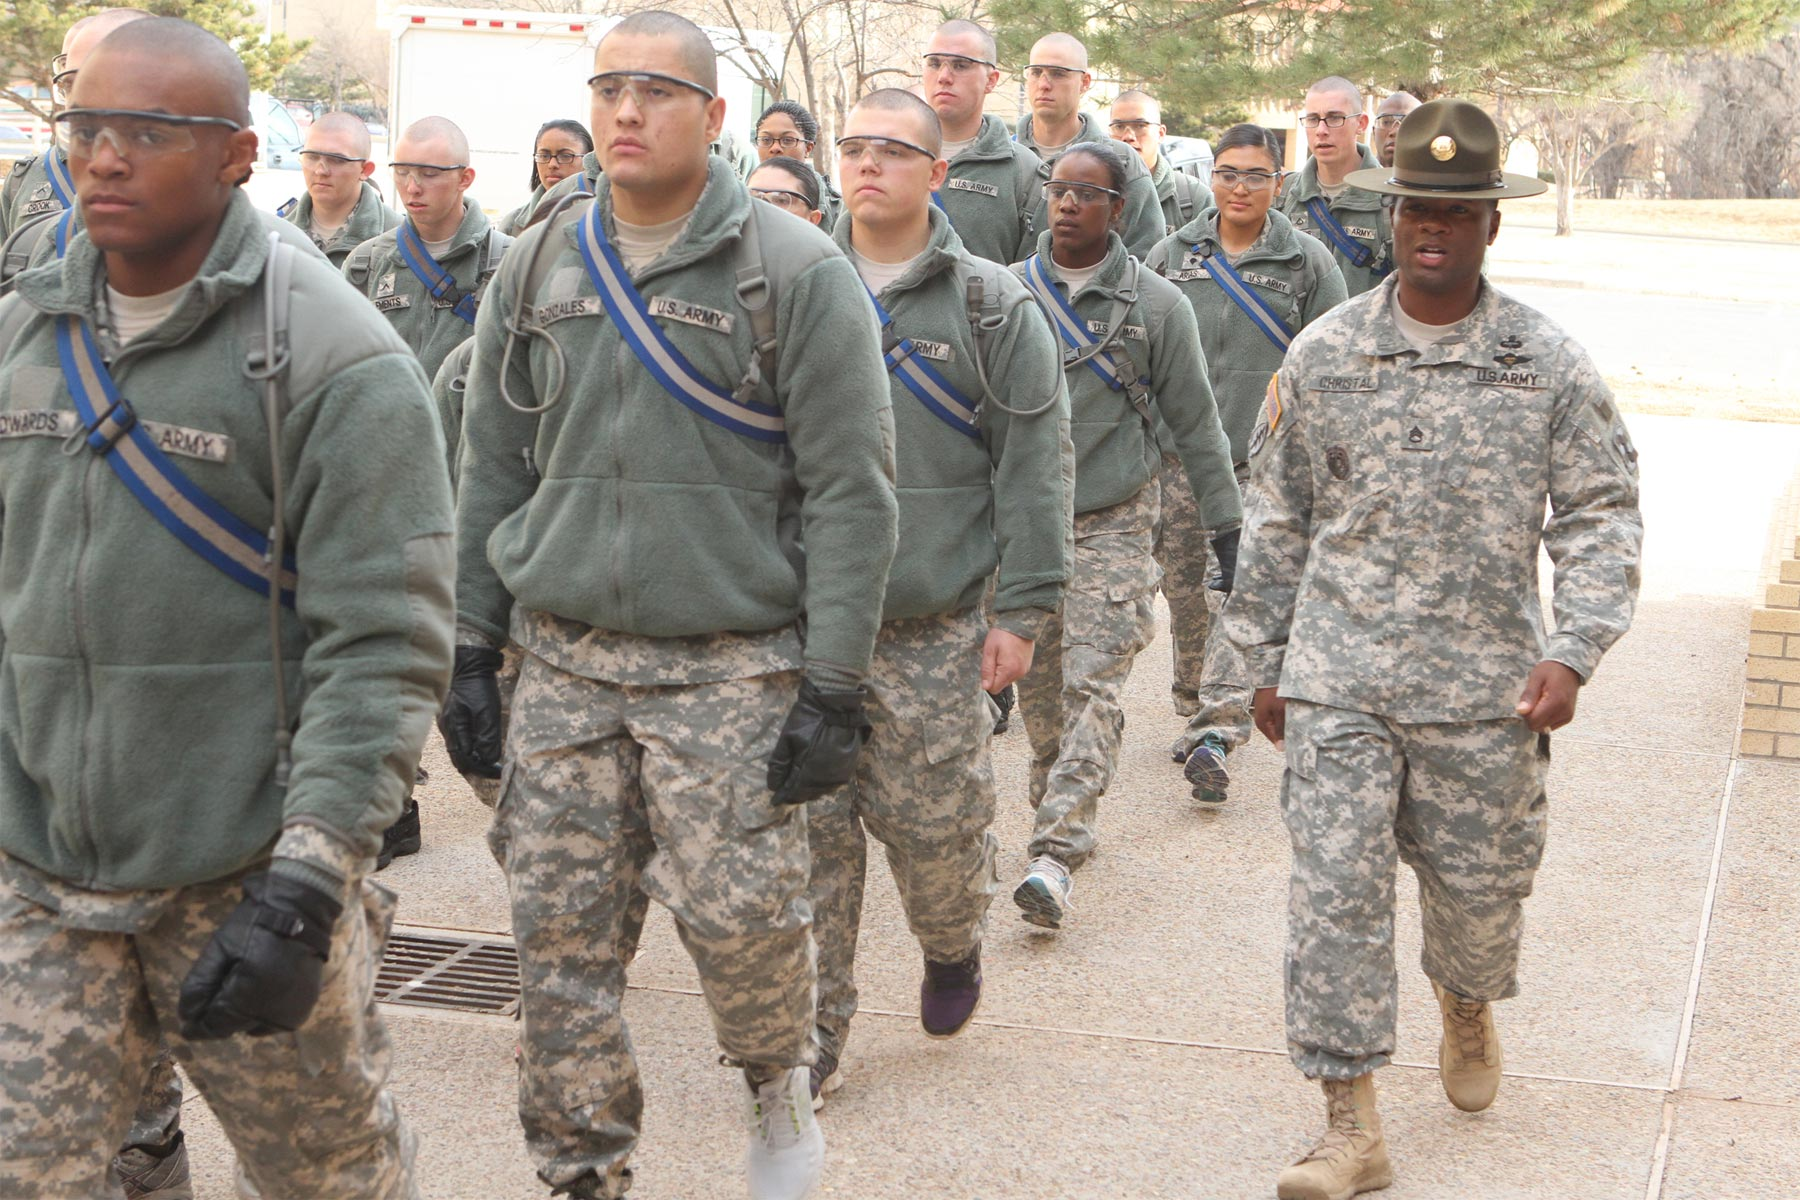 low recruit discipline prompts army to redesign basic